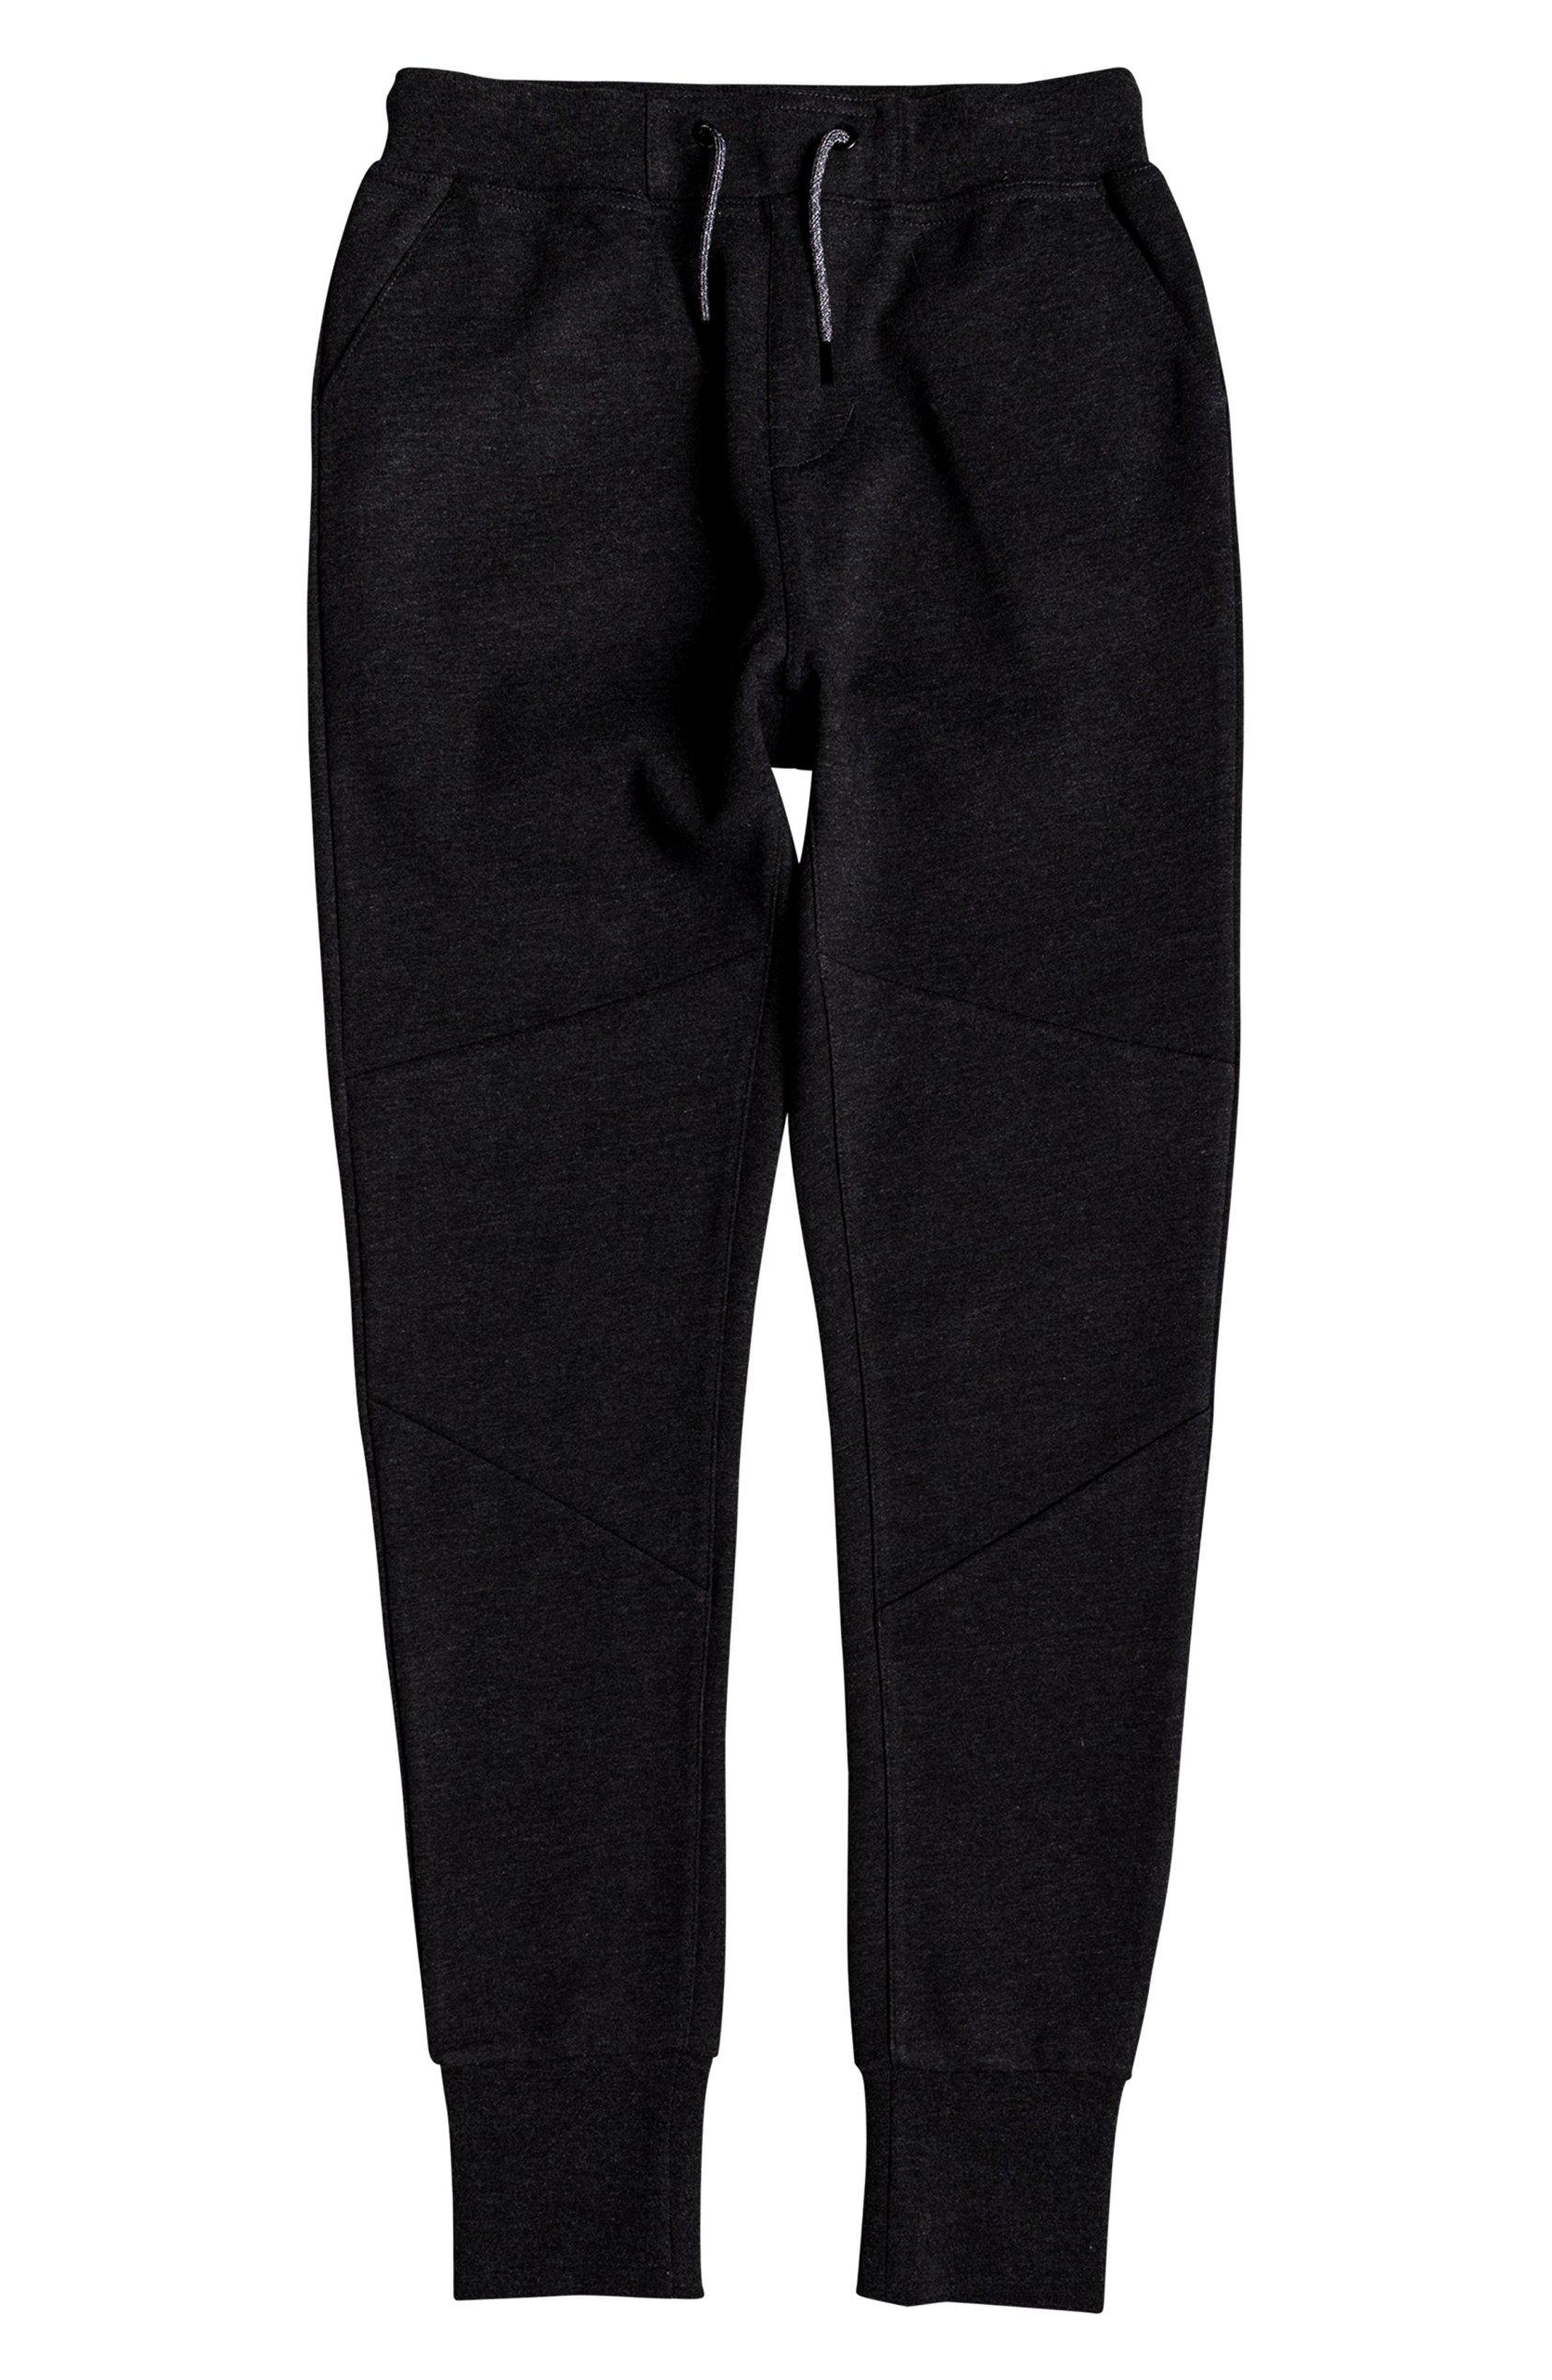 QUIKSILVER,                             Izu Sula Jogger Pants,                             Main thumbnail 1, color,                             020